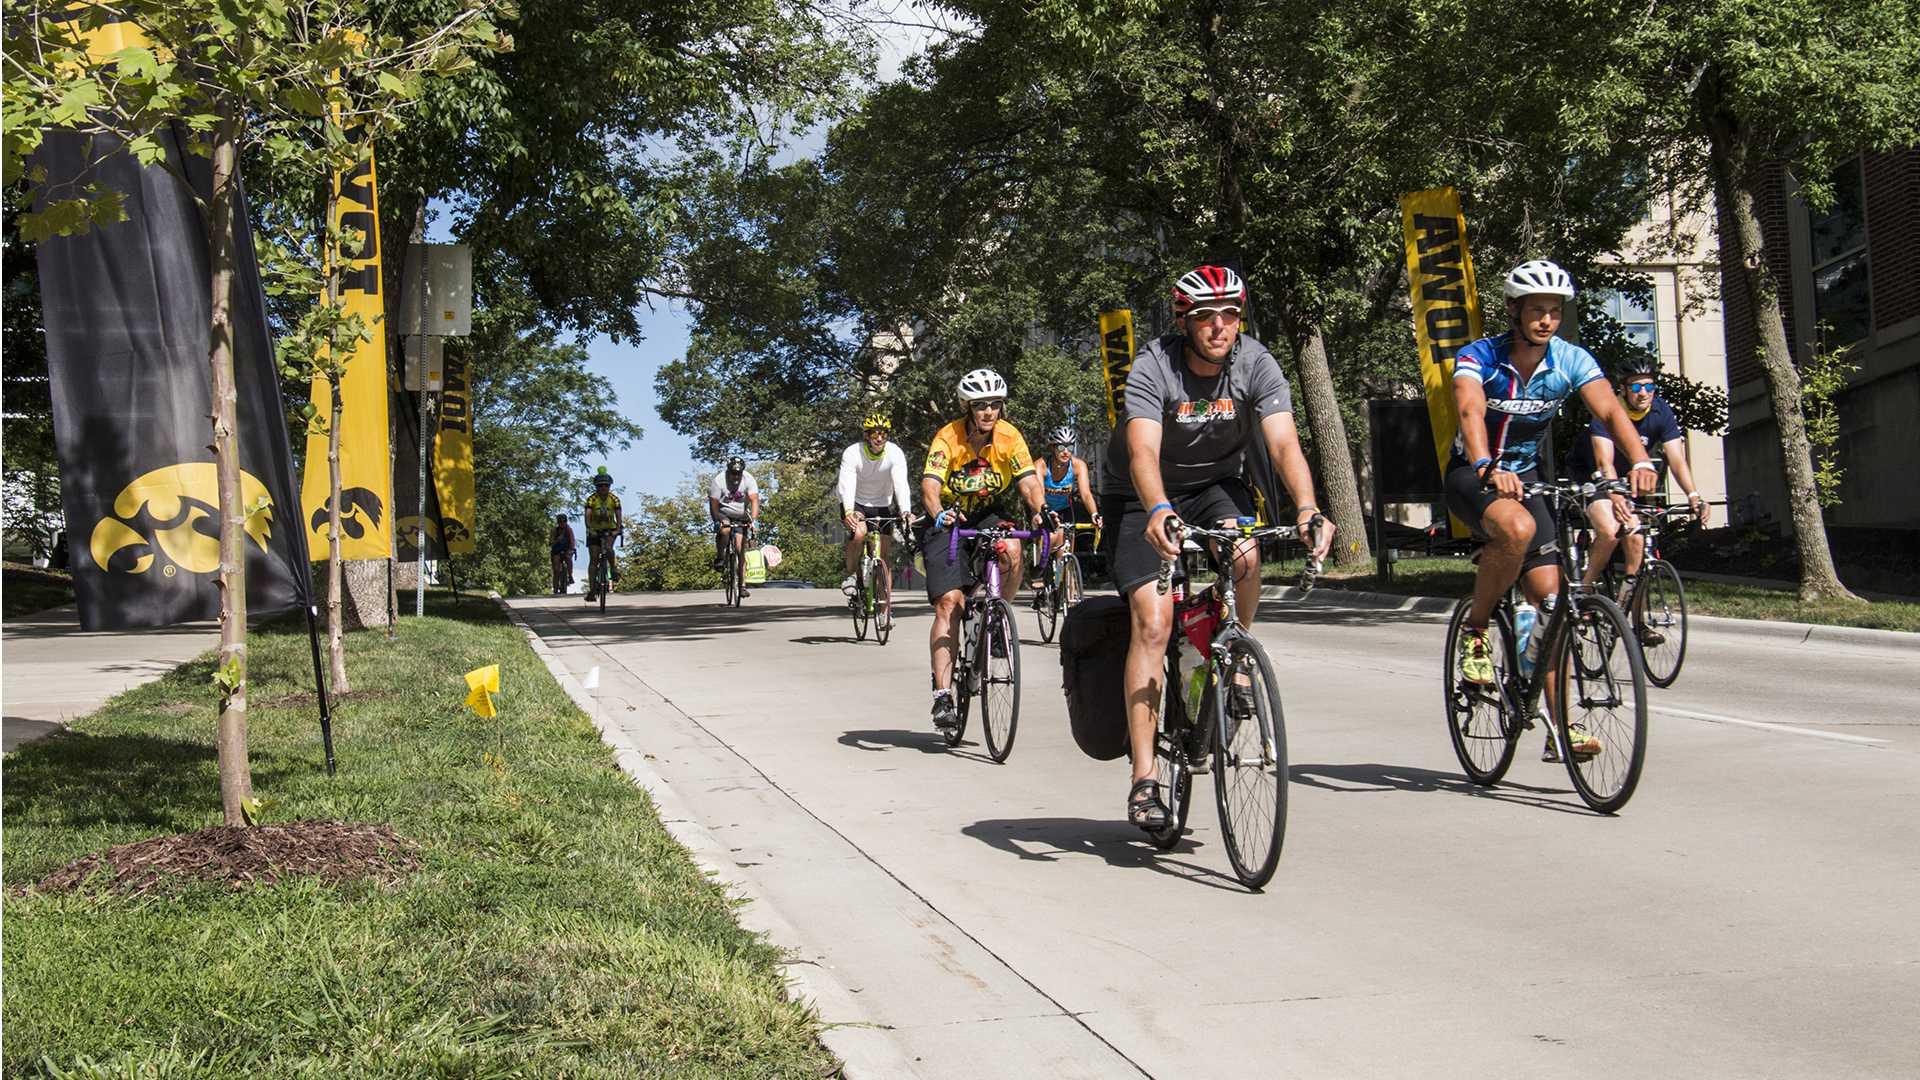 Photos: RAGBRAI in Iowa City (7/27/18)